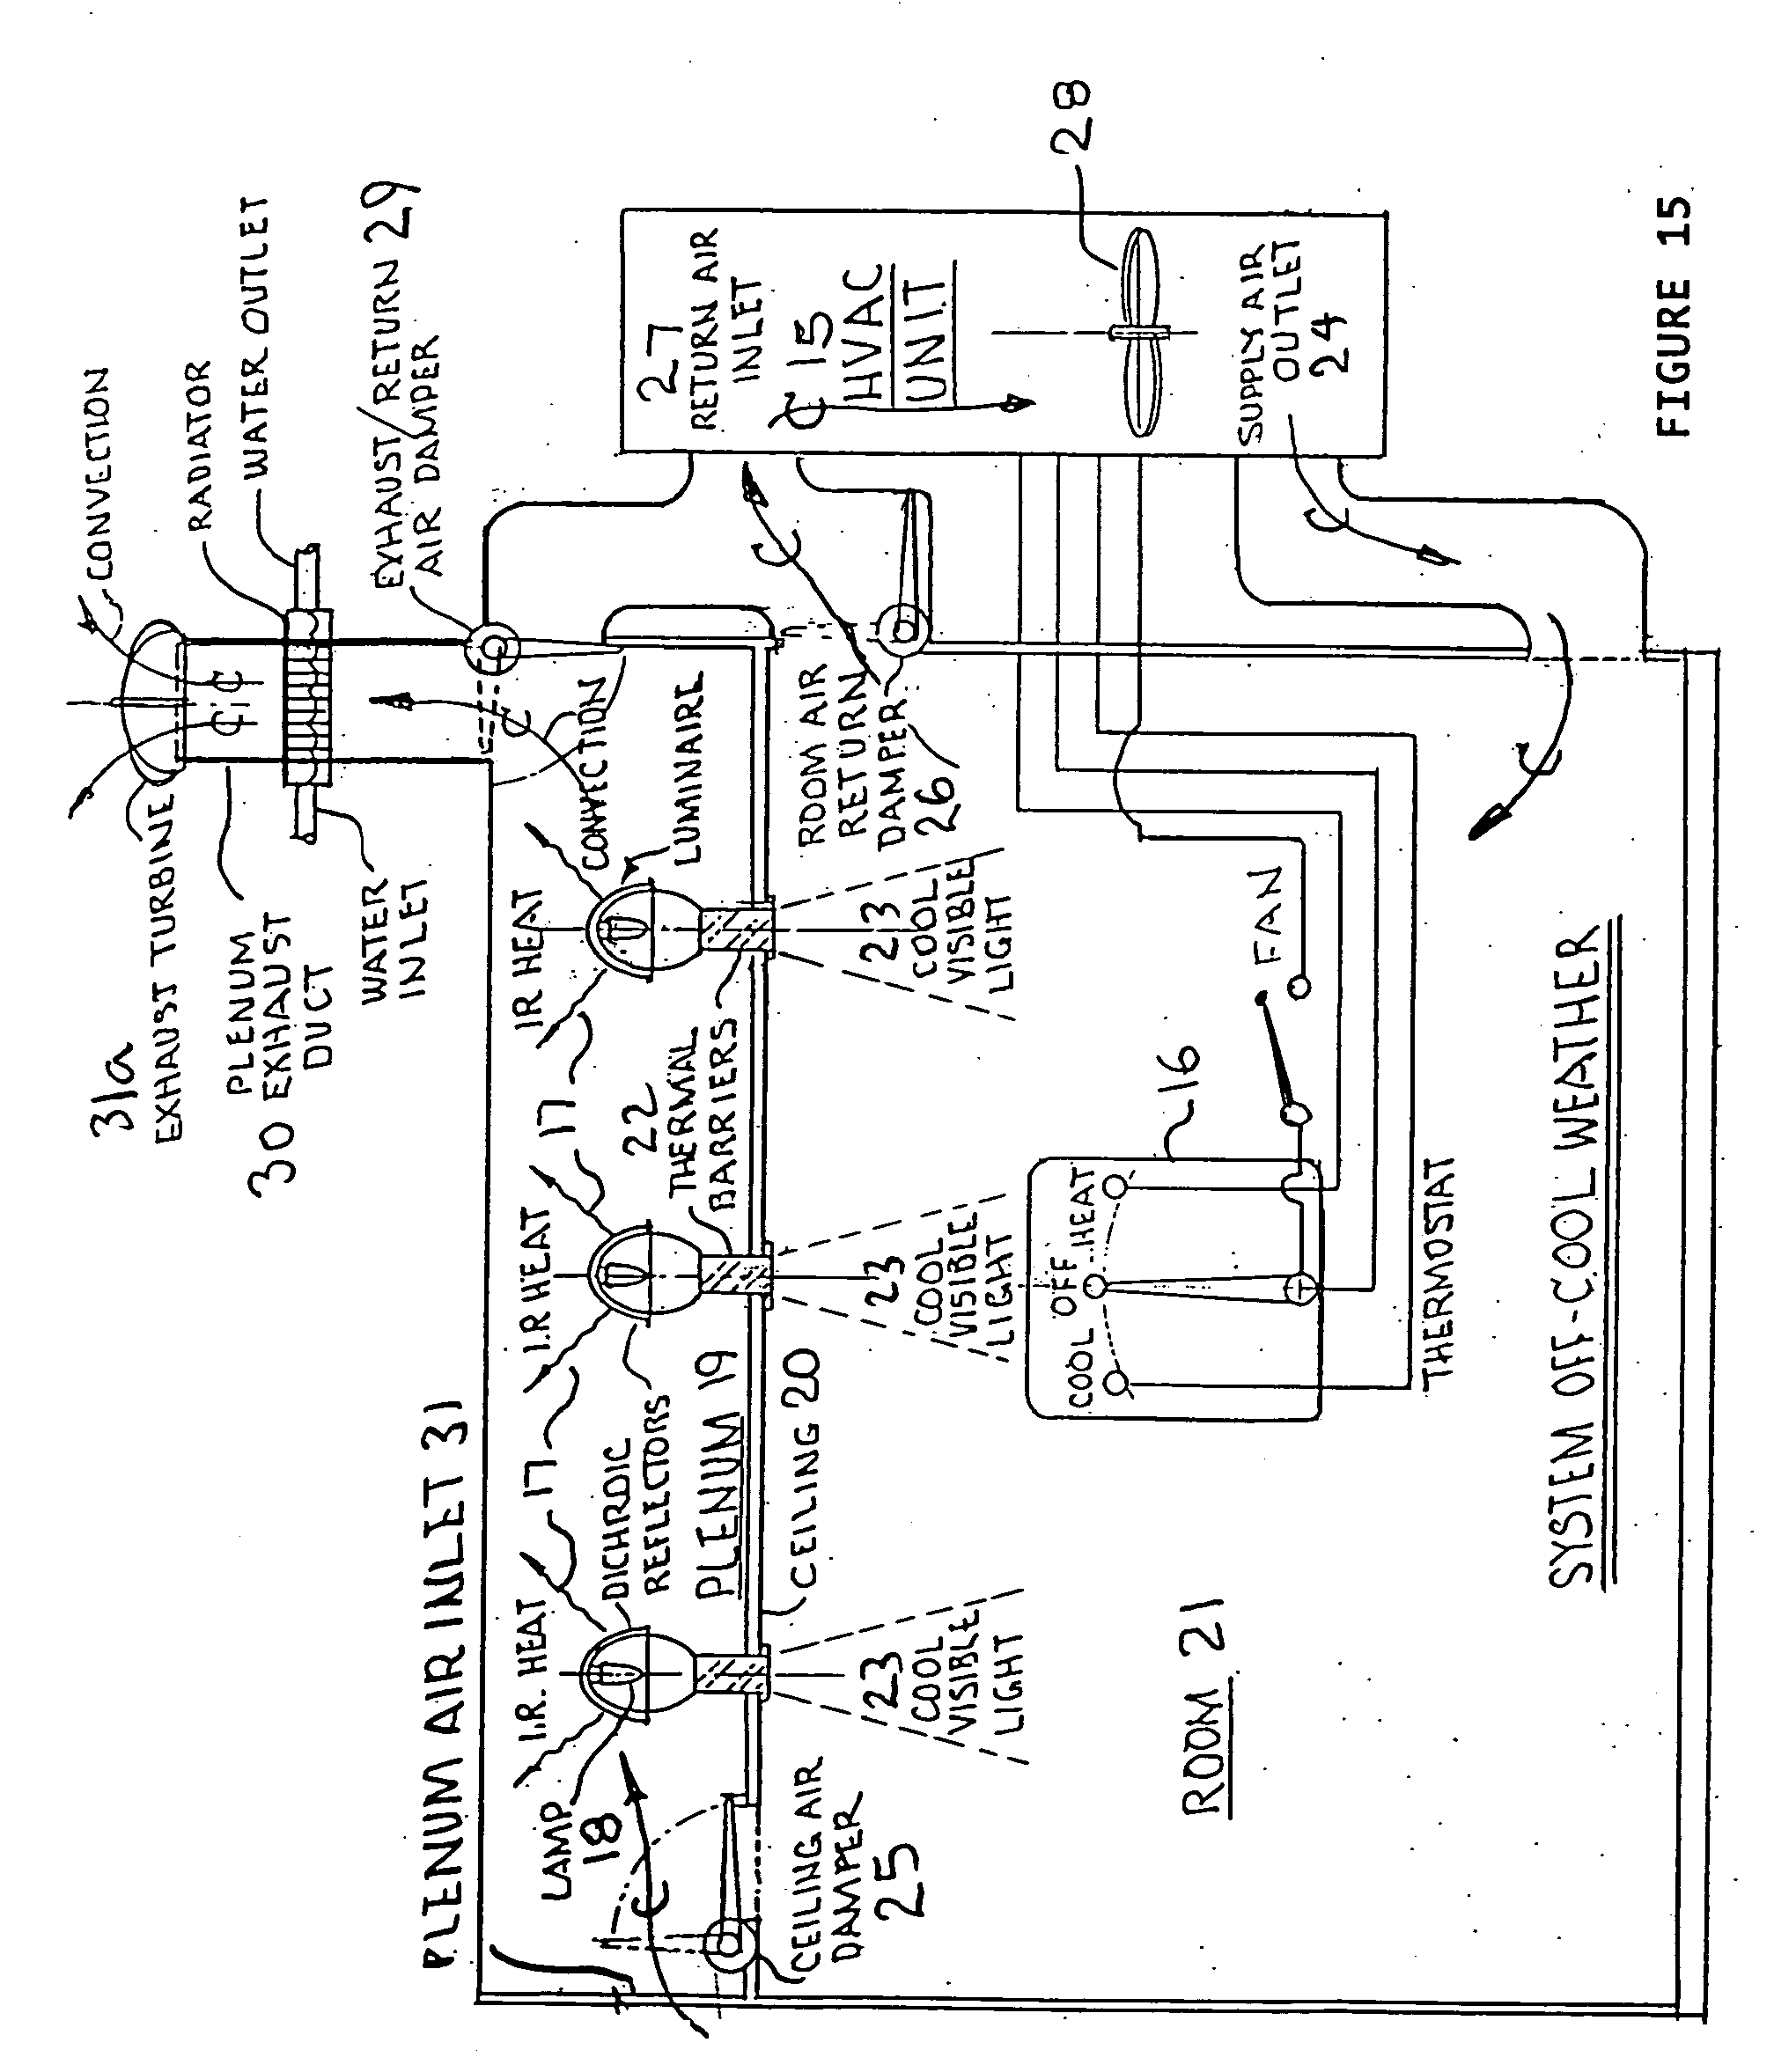 Patent Us20090032604 Energy Saving Integrated Lighting And Hvac Drawing For